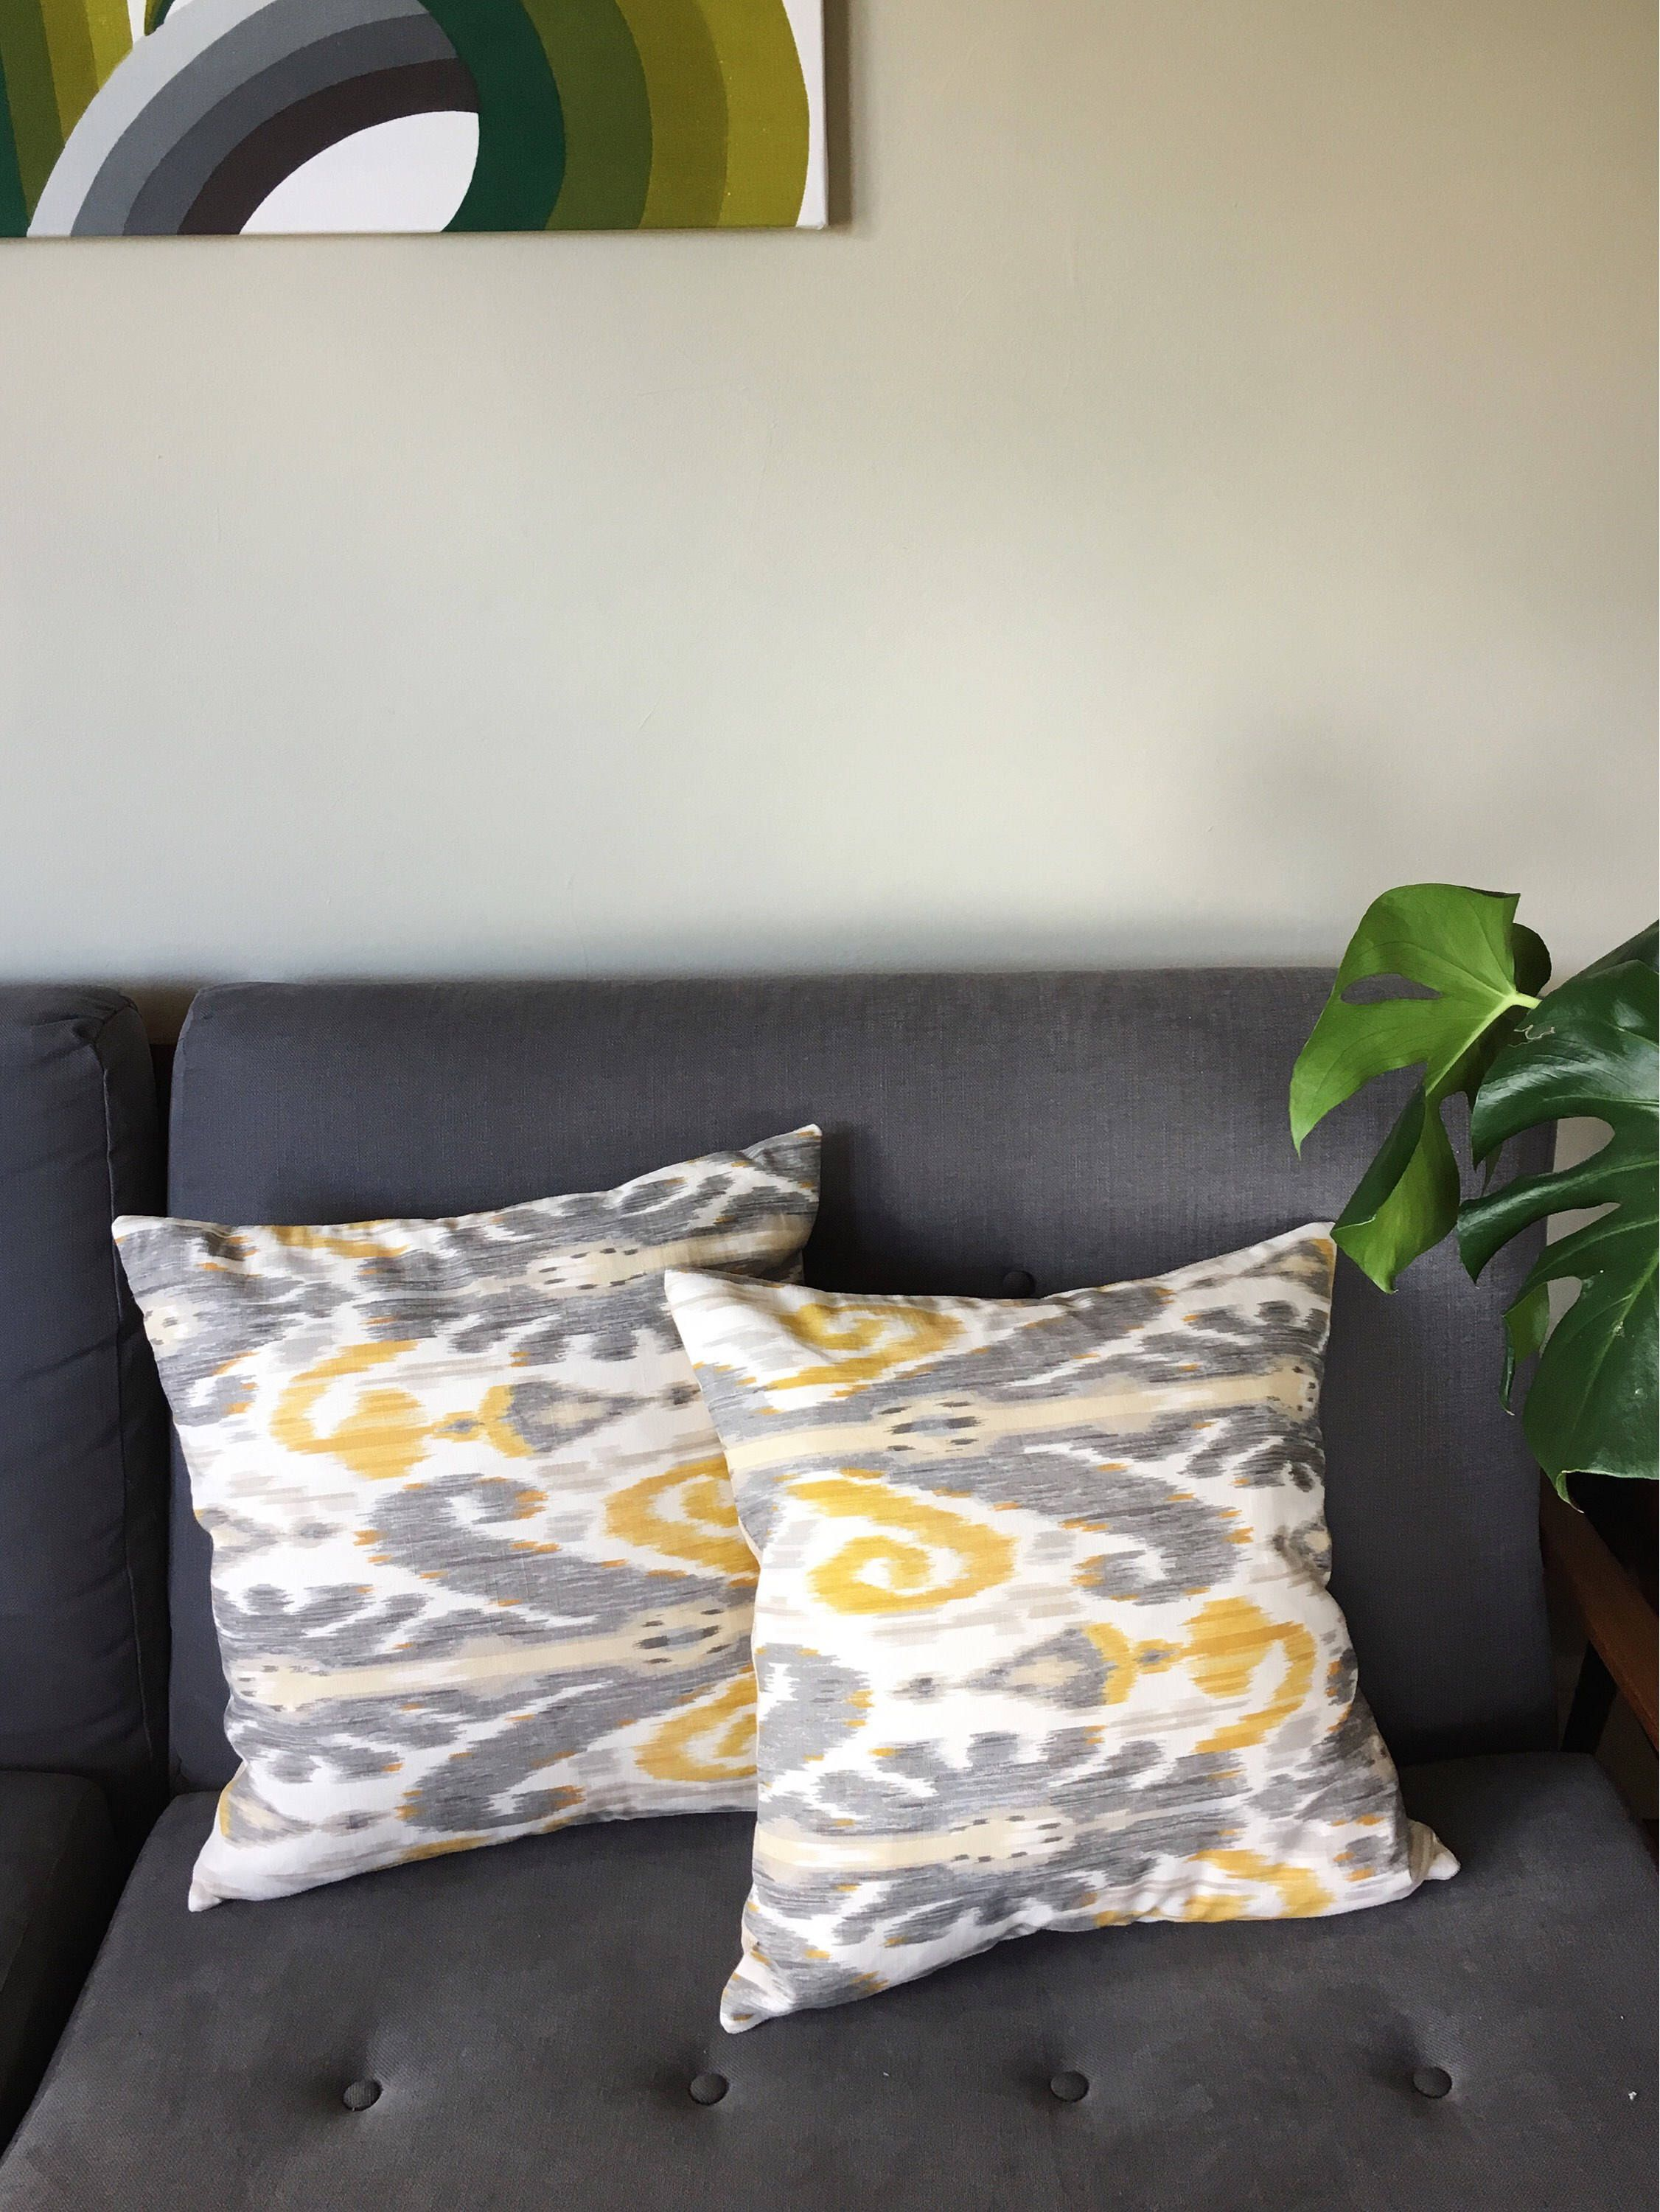 Cushion covers in lee jofaus pardah fabric in pewter yellow grey